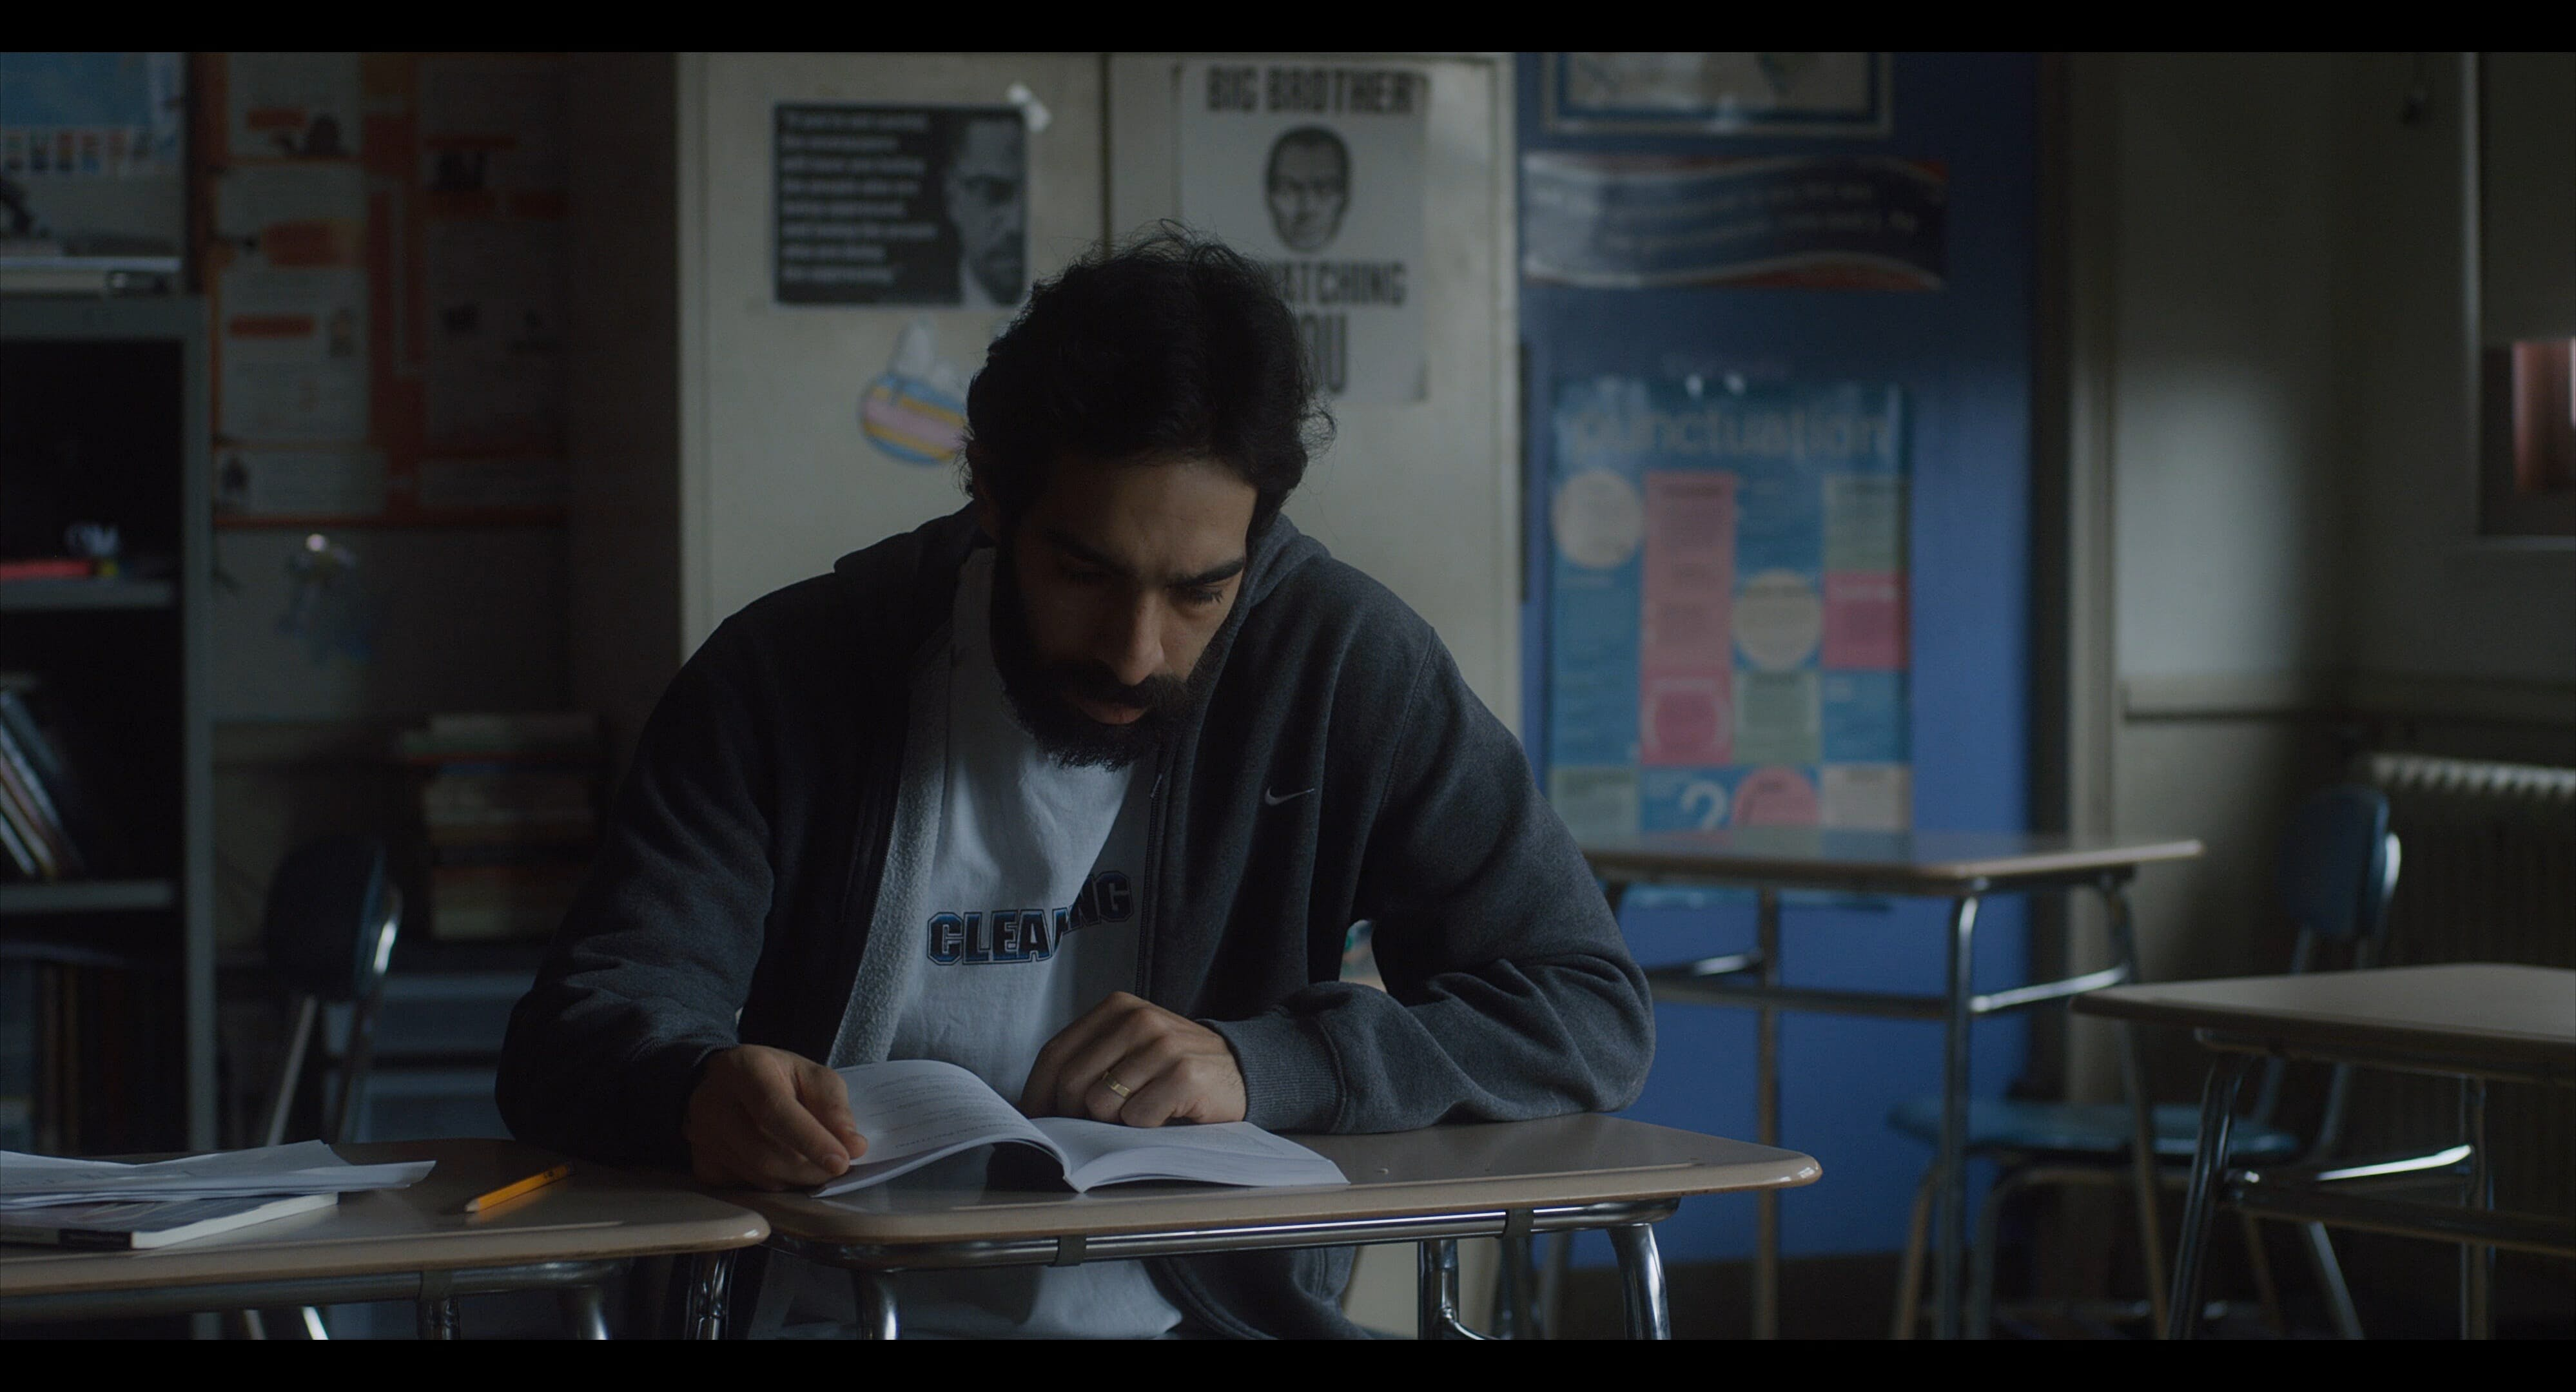 A man learns English in an empty, dark classroom in the film 'Carro.'